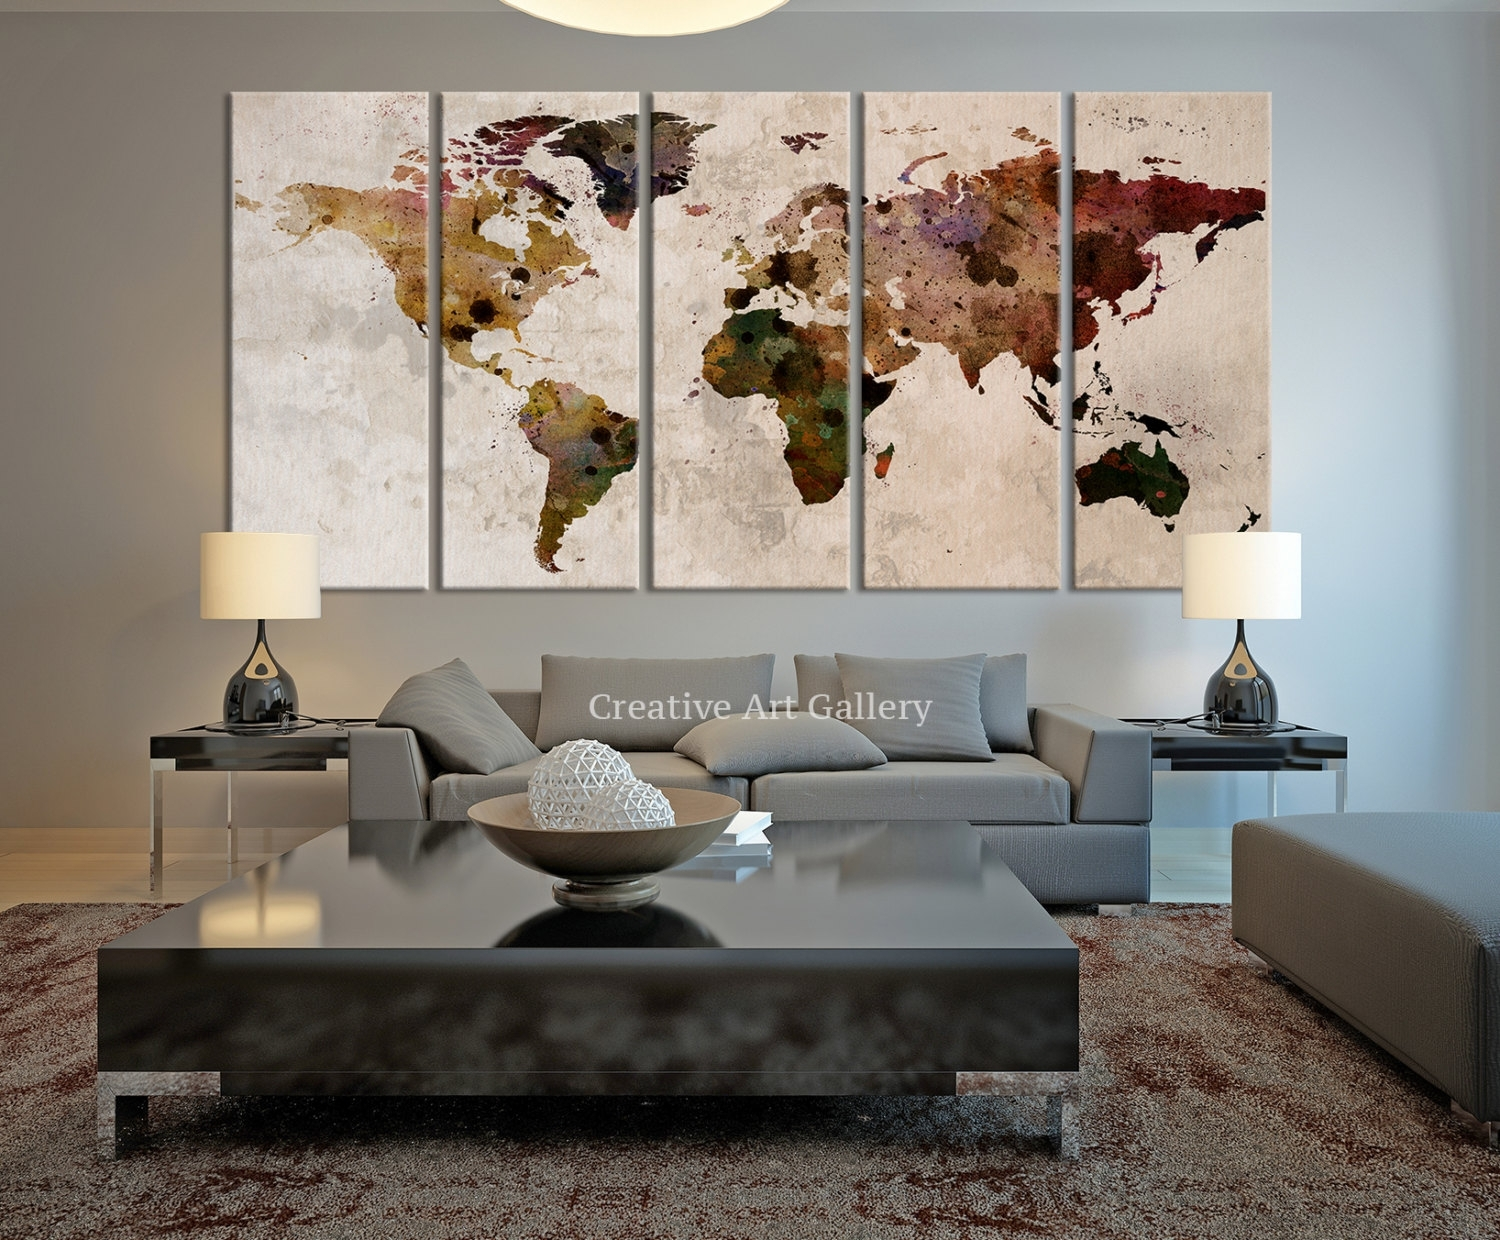 20+ Rustic Wall Decor Ideas To Help You Add Rustic Beauty To Your Pertaining To Most Recently Released Quirky Canvas Wall Art (View 5 of 15)